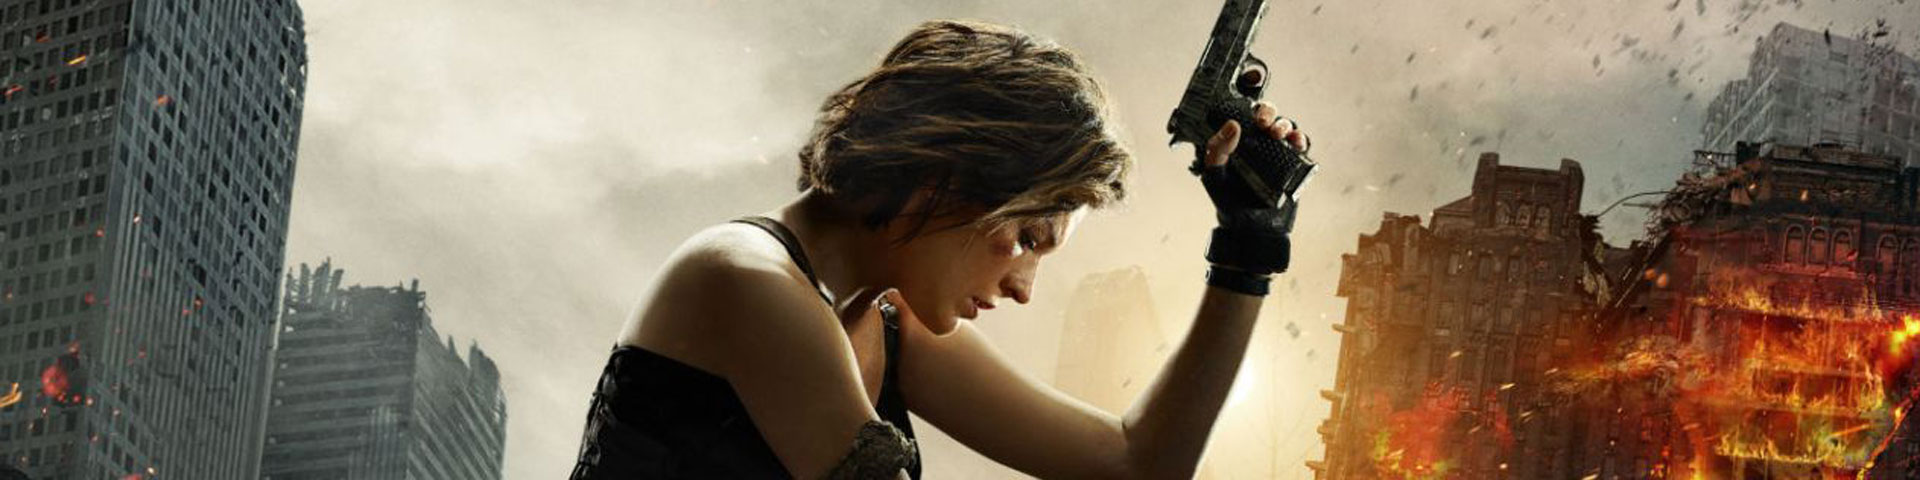 A woman sits on a pile of debris, a gun raised in her left hand while the sun sets behind her. Crumbling buildings appear to the left and right.